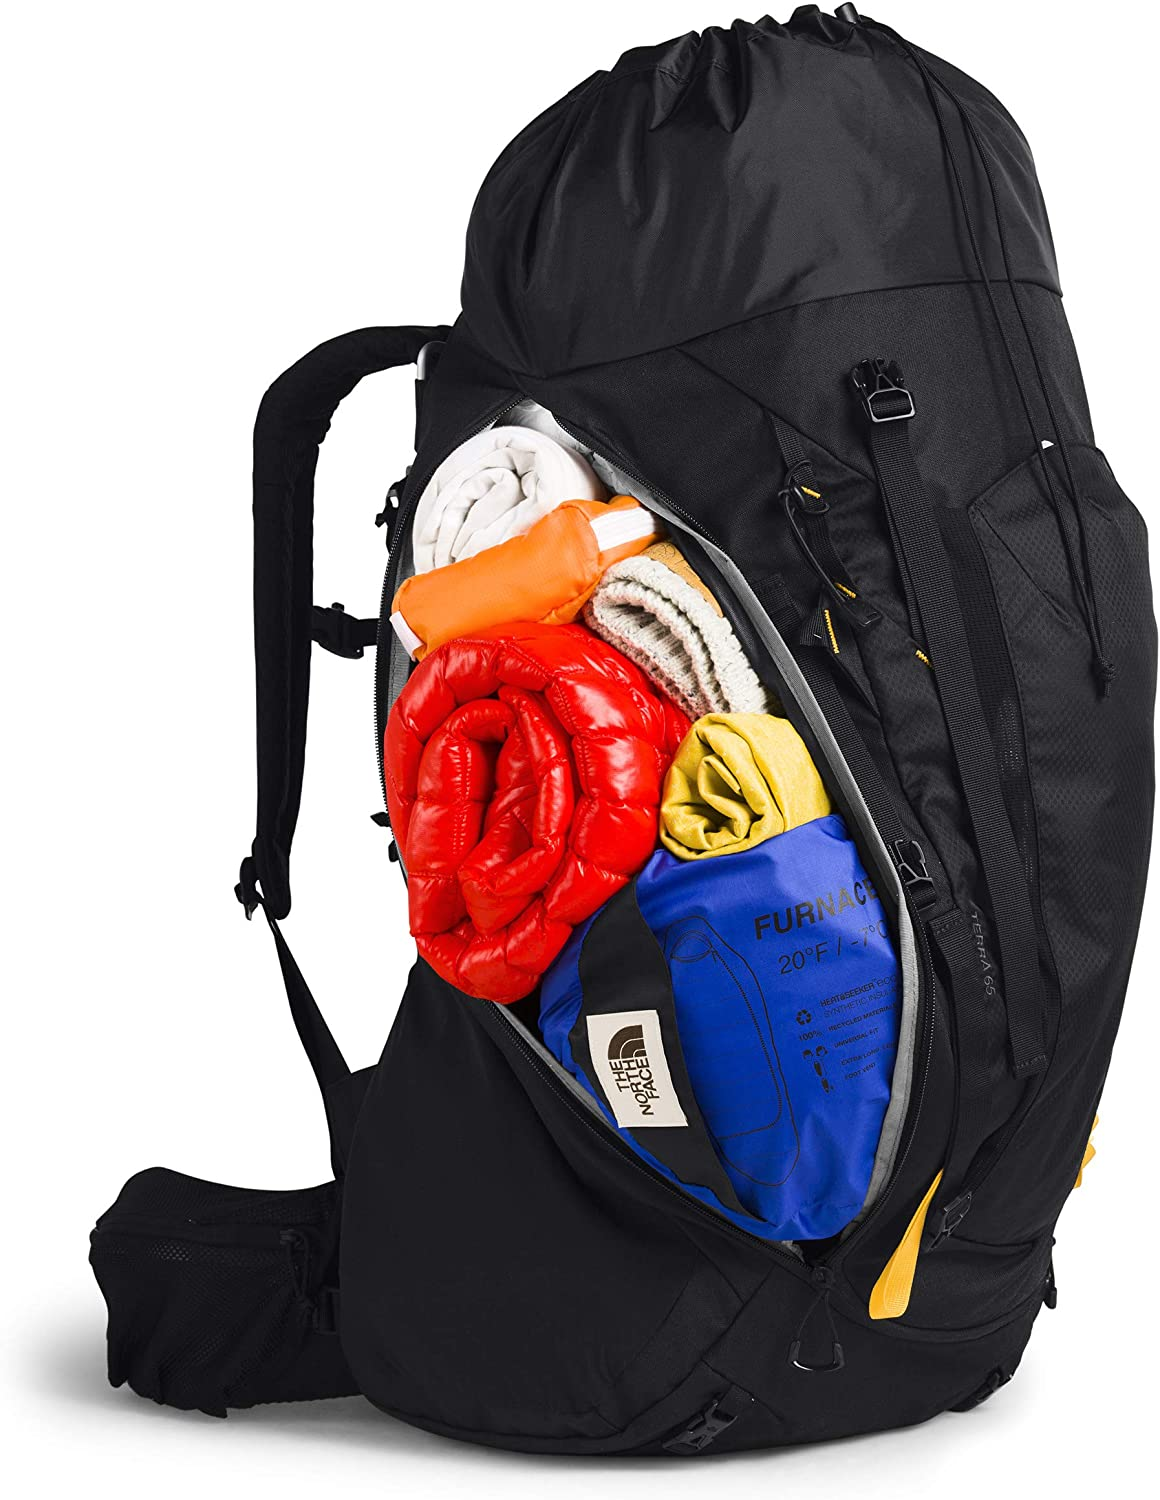 The North Face Terra Camping Backpack